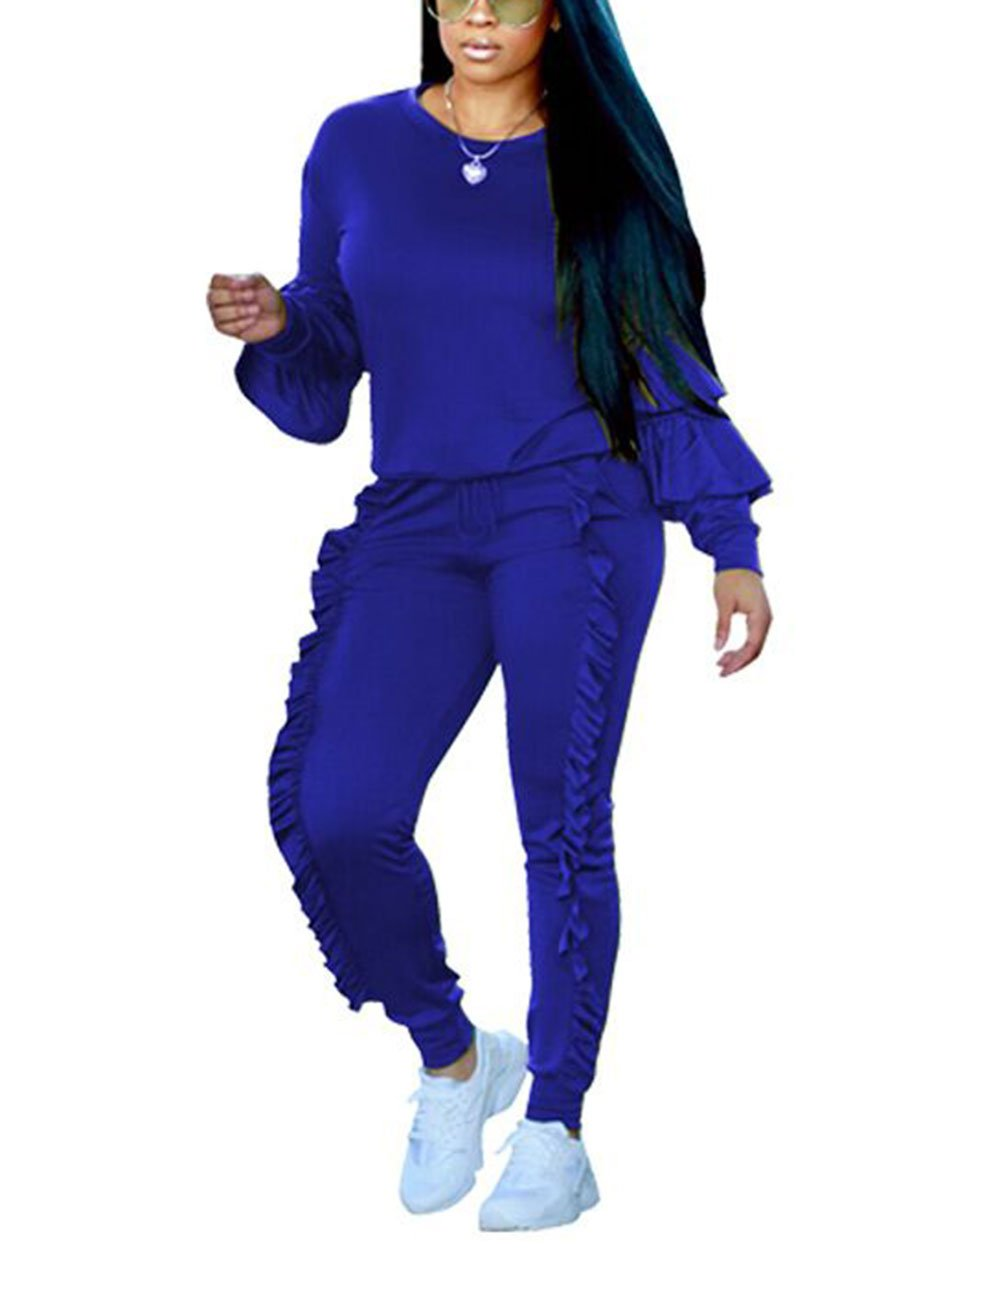 Women Sweatshirt Ruffle Sleeve Pullover Tops and Long Jogger Pants Royal Blue L